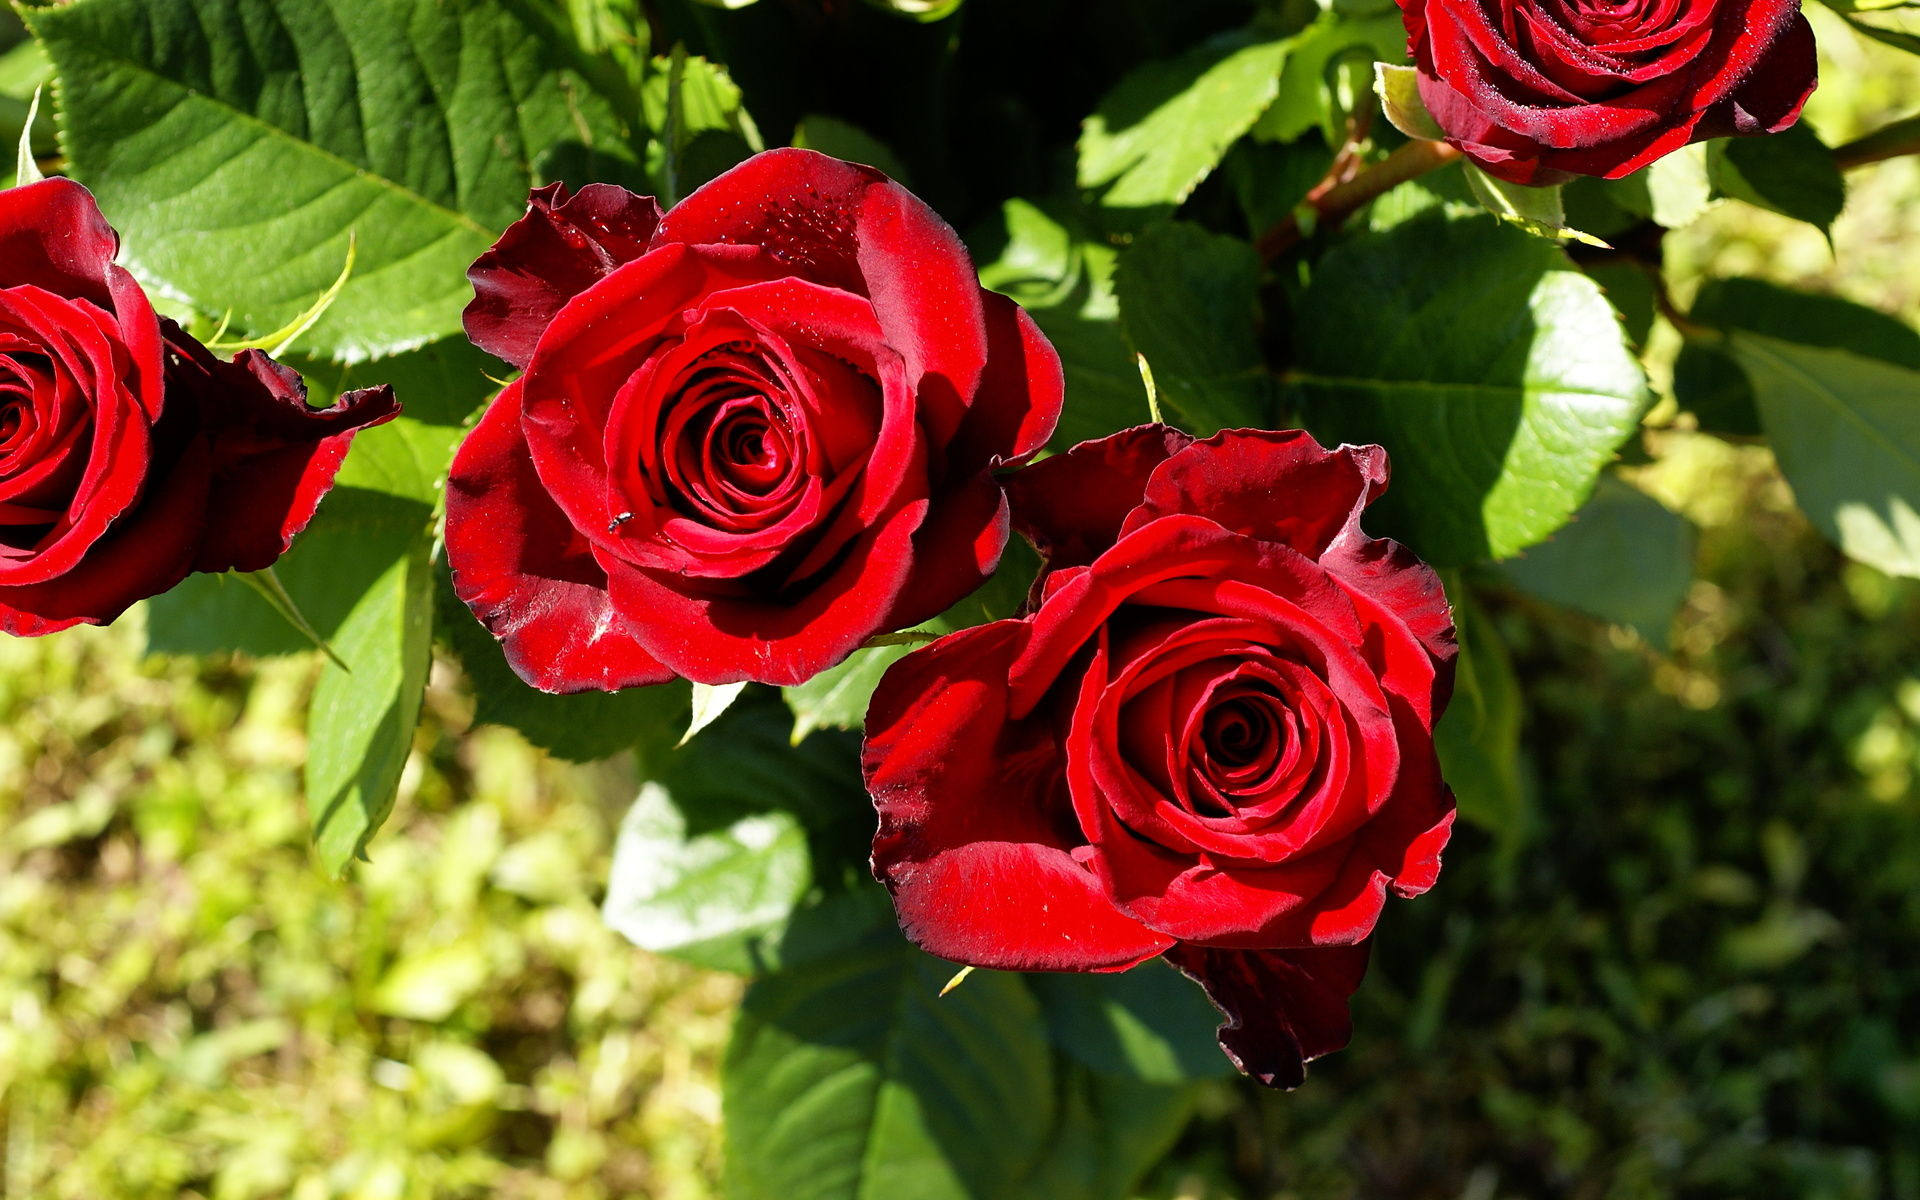 Red Roses Tumblr Background 5 Hd Wallpapers Hd Images Hd Pictures